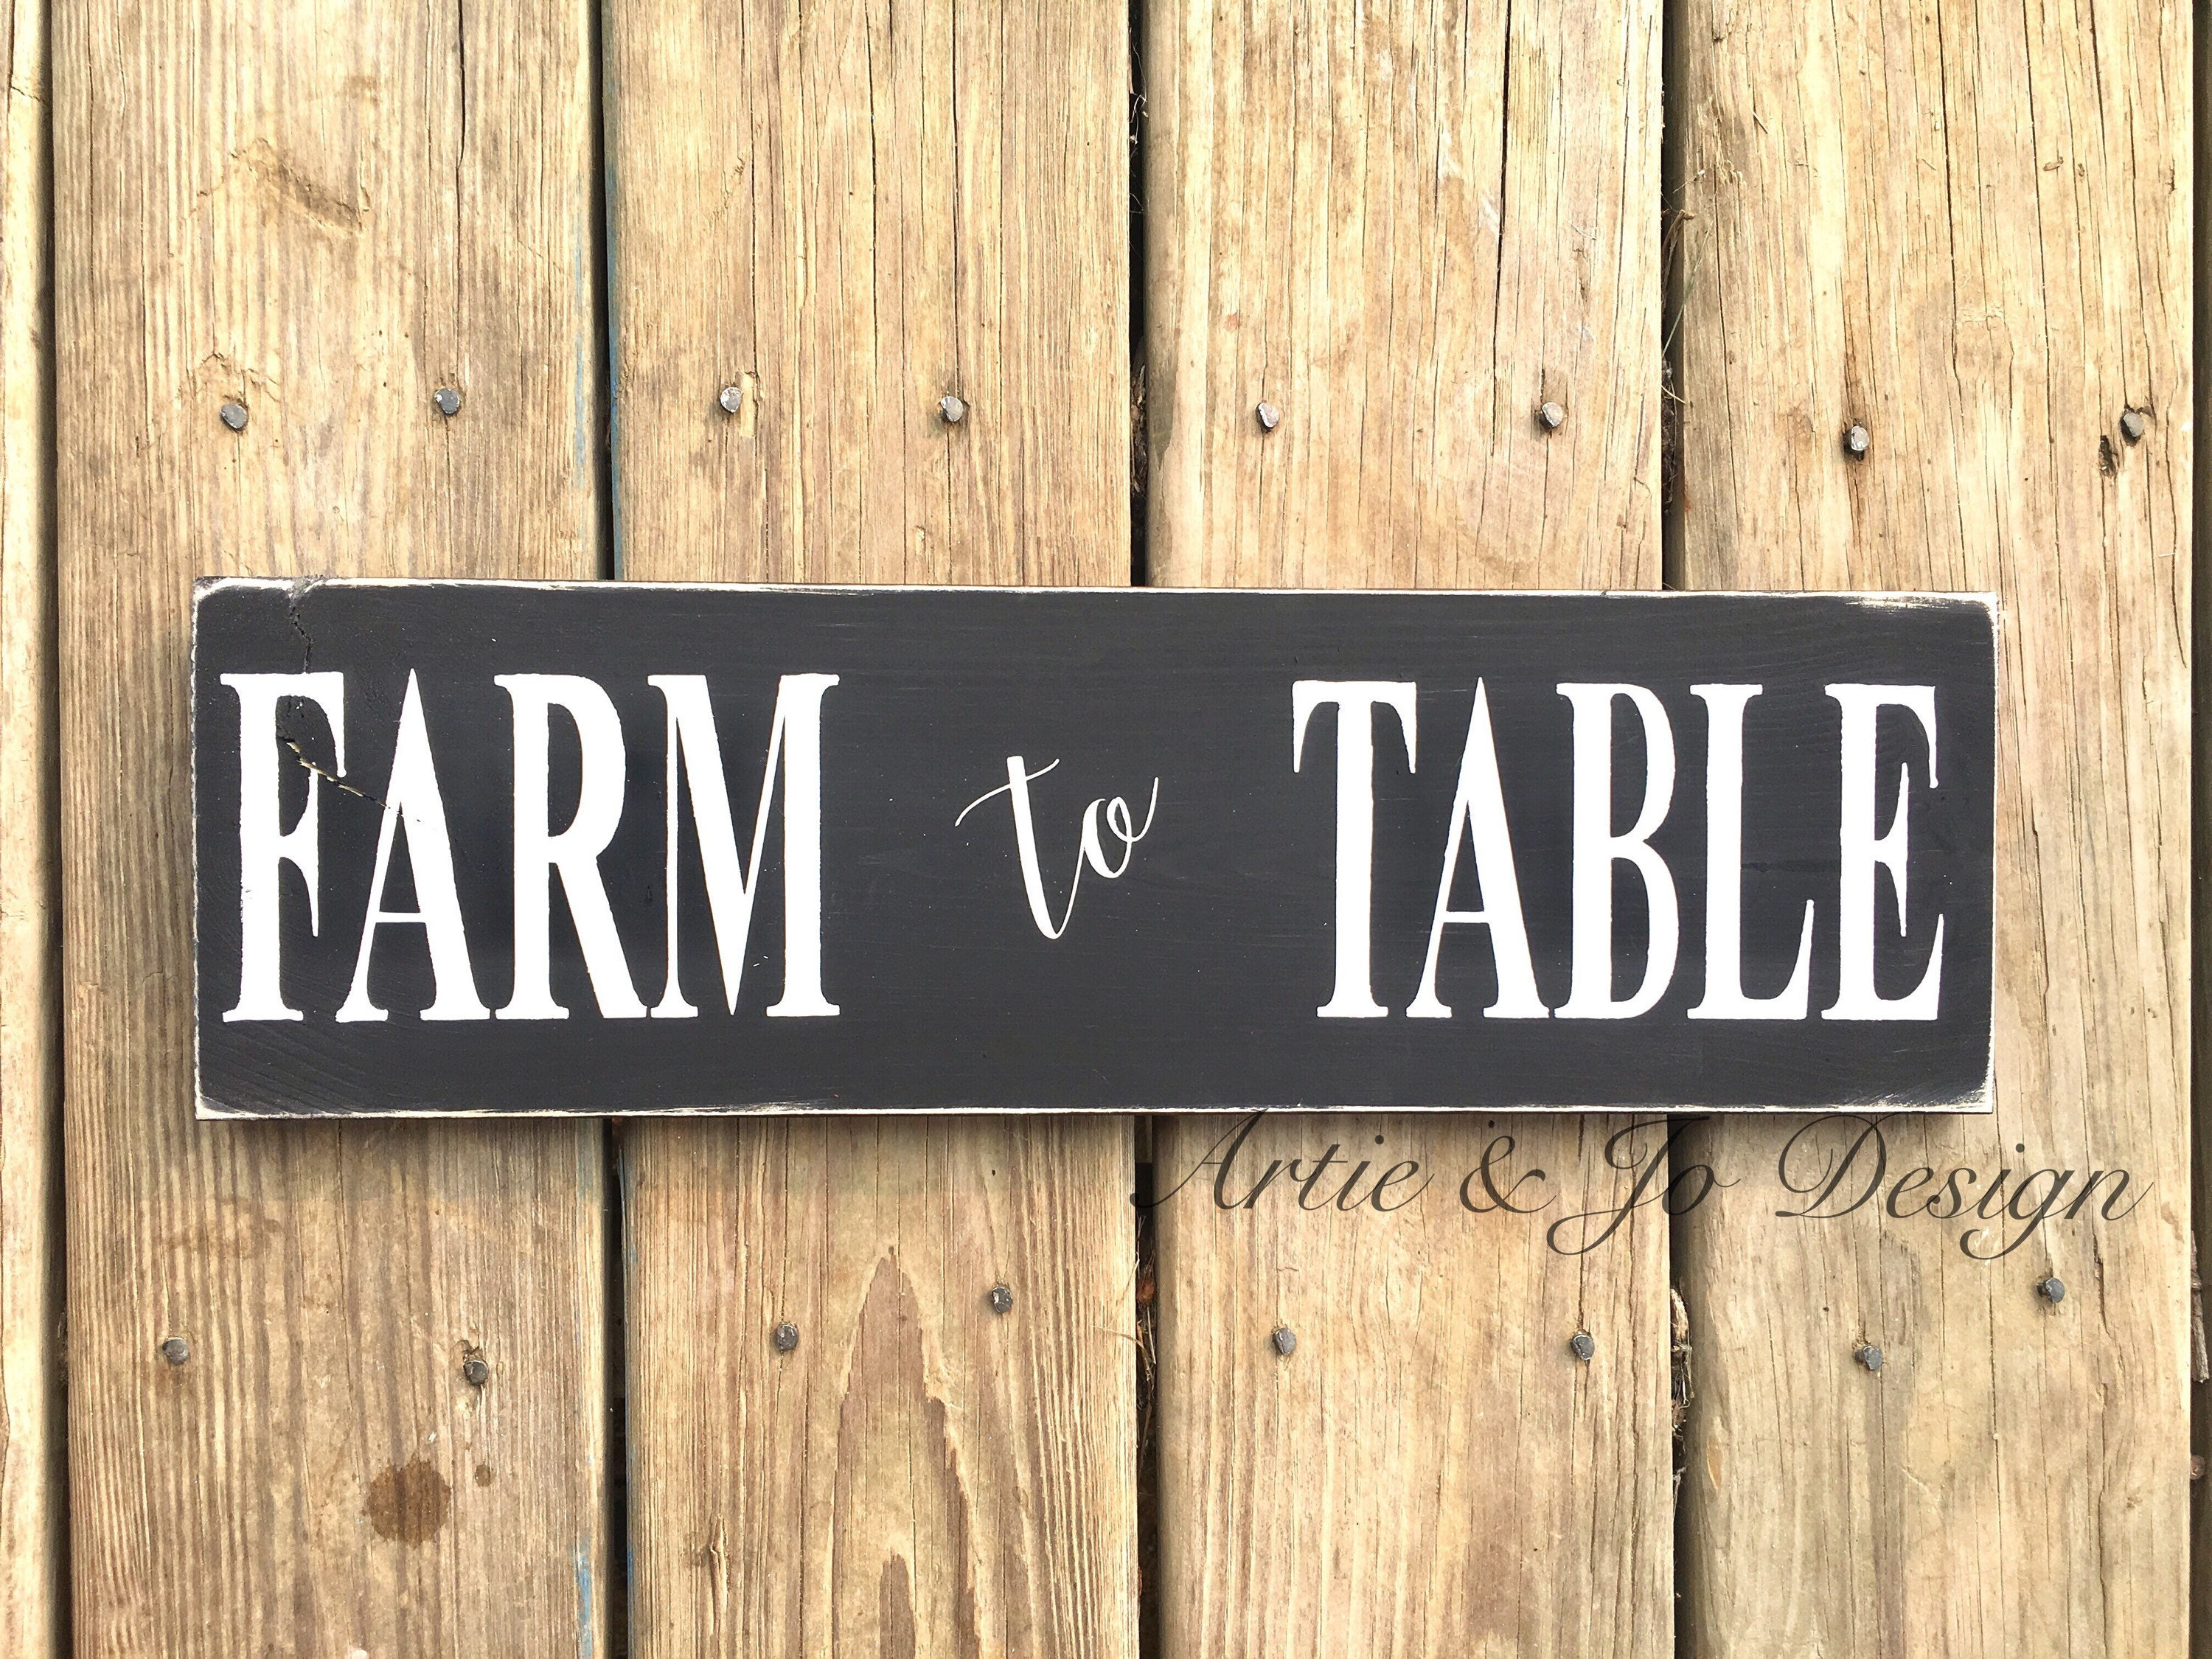 Farm to Table Wood Sign Rustic Farmhouse Decor Kitchen Dining